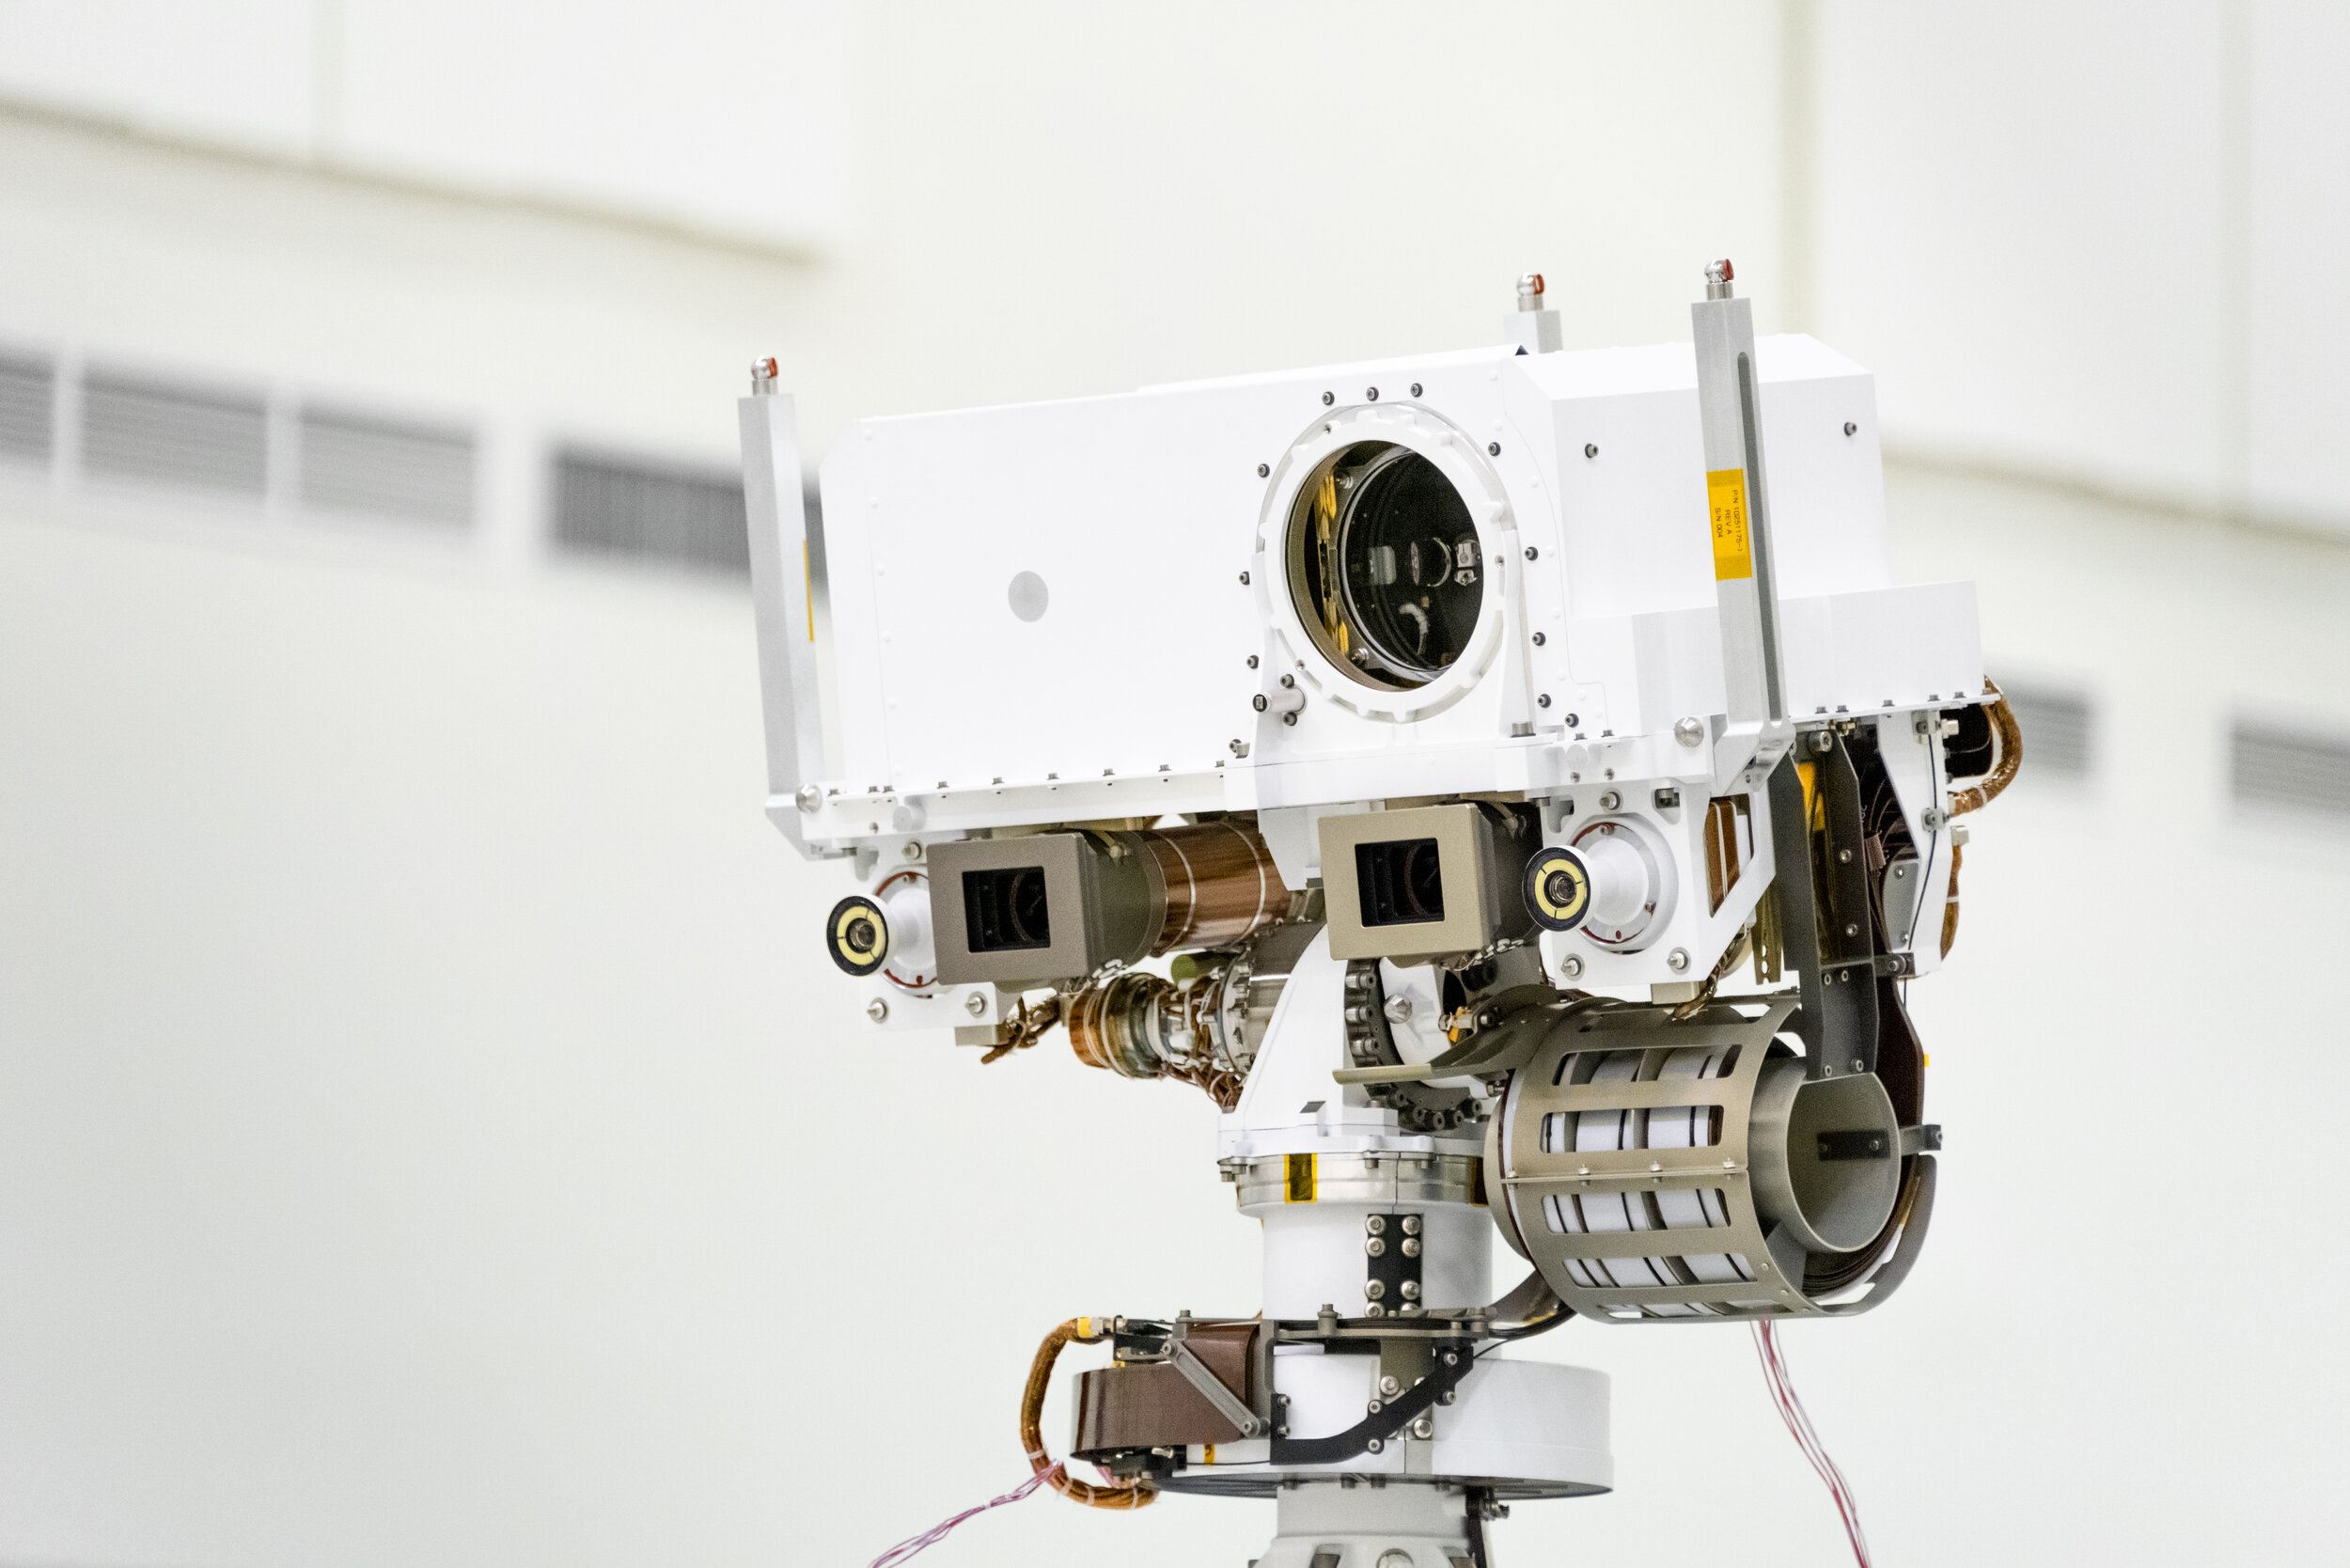 Image credit: NASA. This image, taken in the Spacecraft Assembly Facility's High Bay 1 at the Jet Propulsion Laboratory in Pasadena, California, on July 23, 2019, shows a close-up of the head of Mars 2020's remote sensing mast.